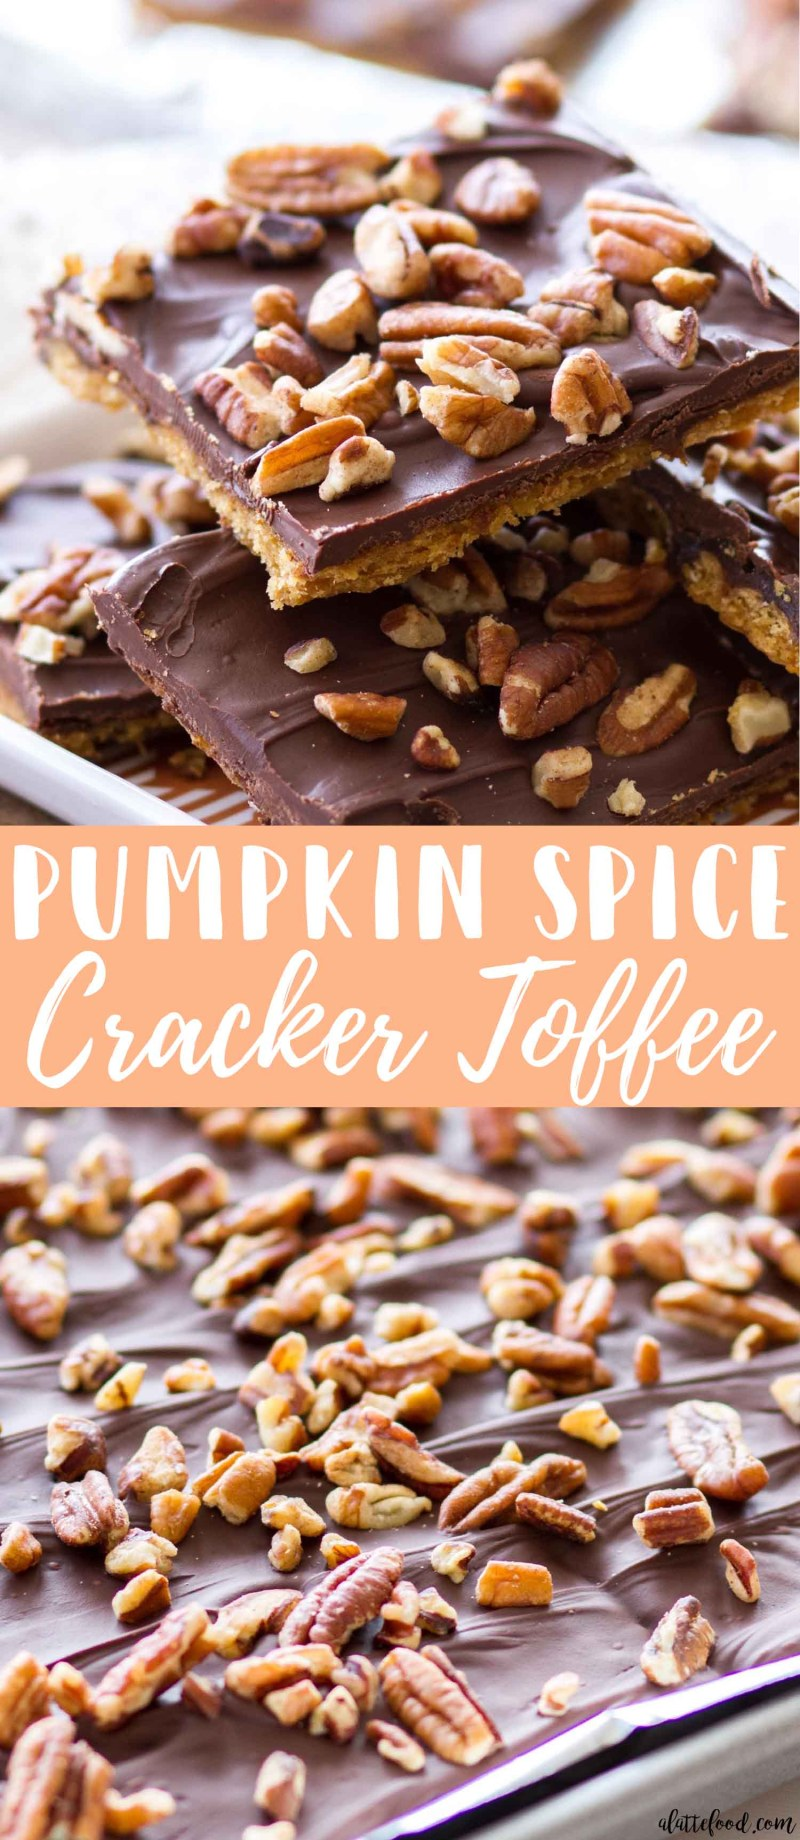 Pumpkin Spice Cracker Toffee with chocolate and pecans collage